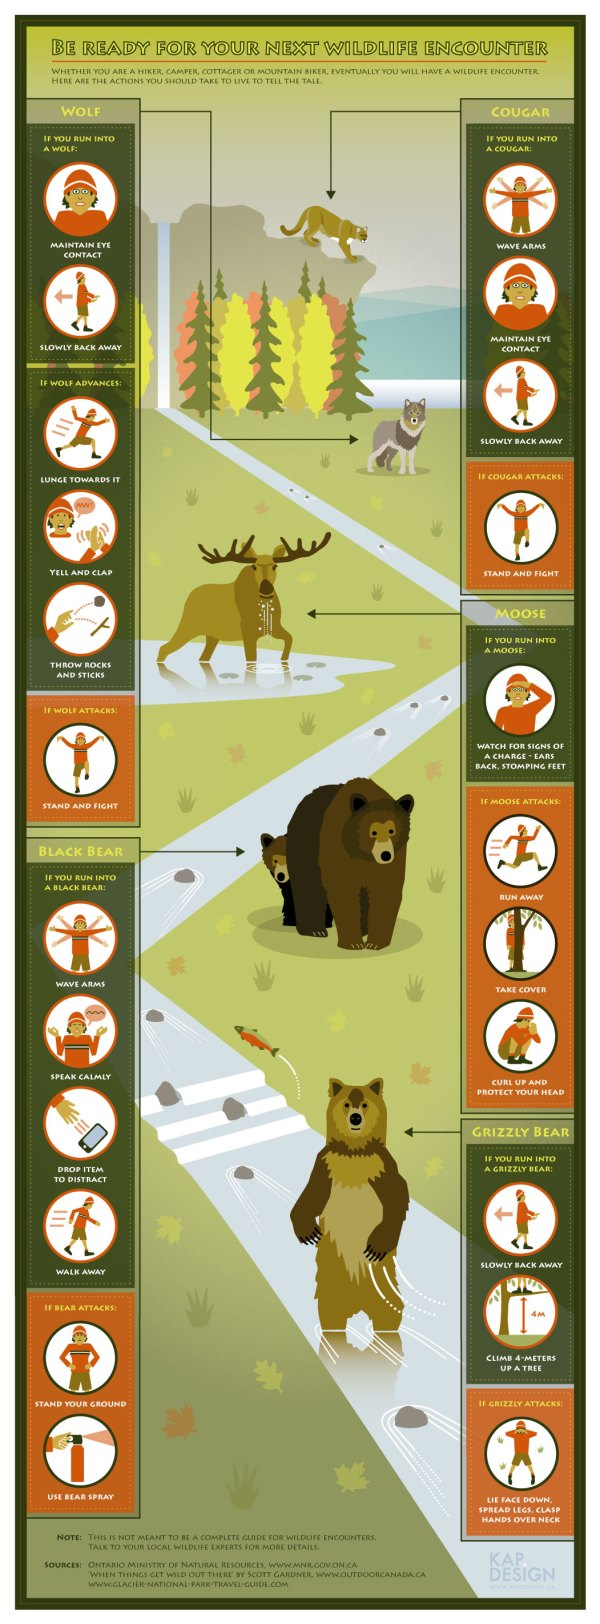 'Be Ready For Your Next Wildlife Encounter' infographic by KAP.